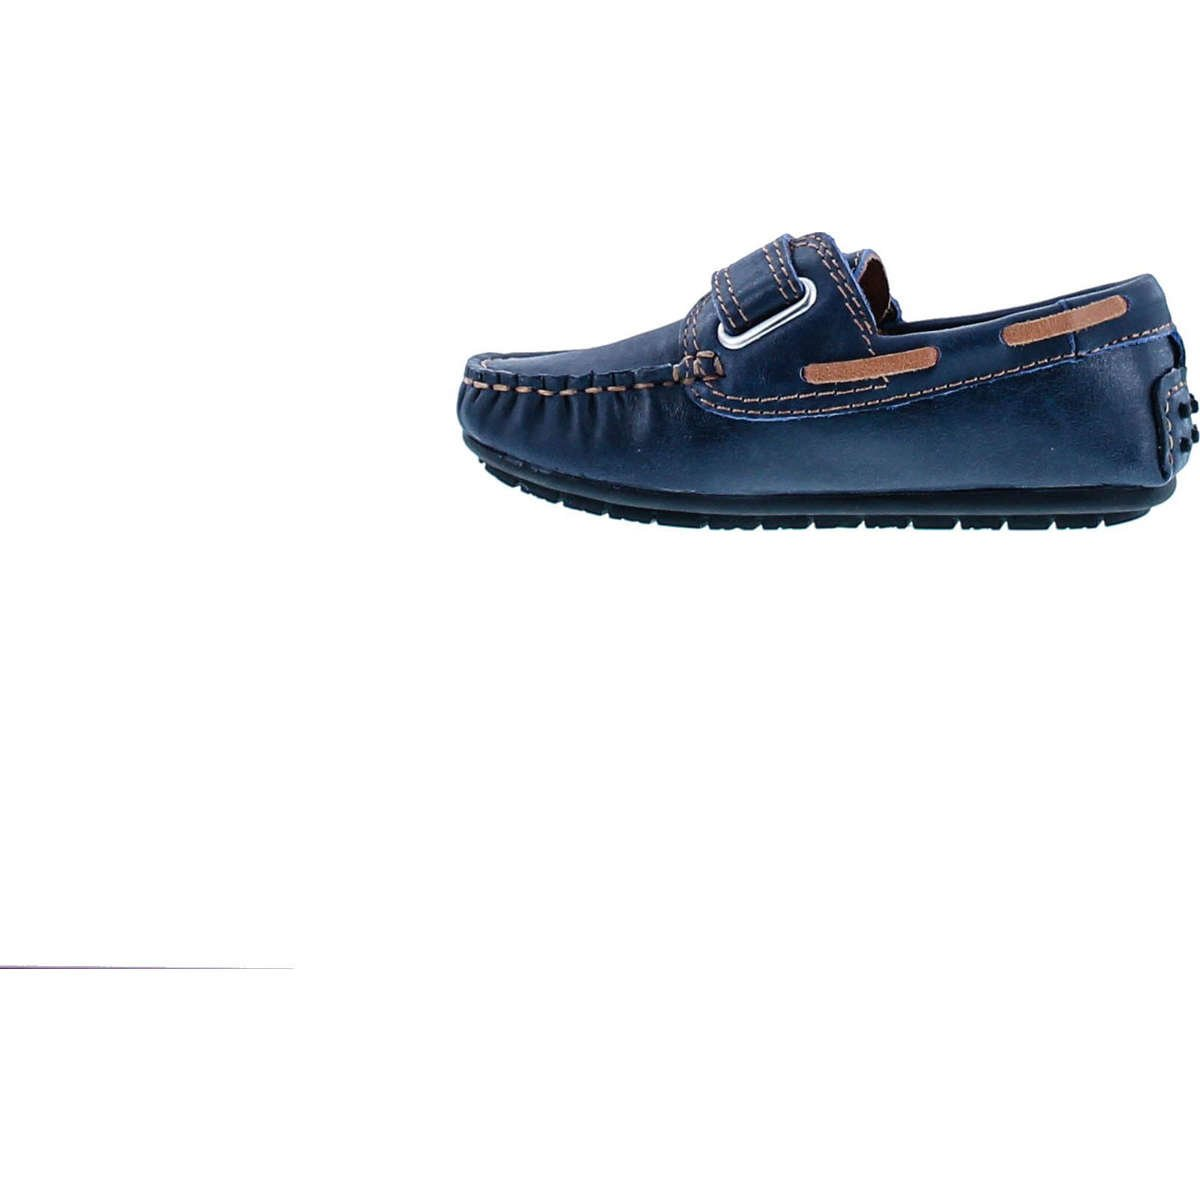 Venettini Boys 55-Samy 5 Loafers with Strap Casual Dress Shoe